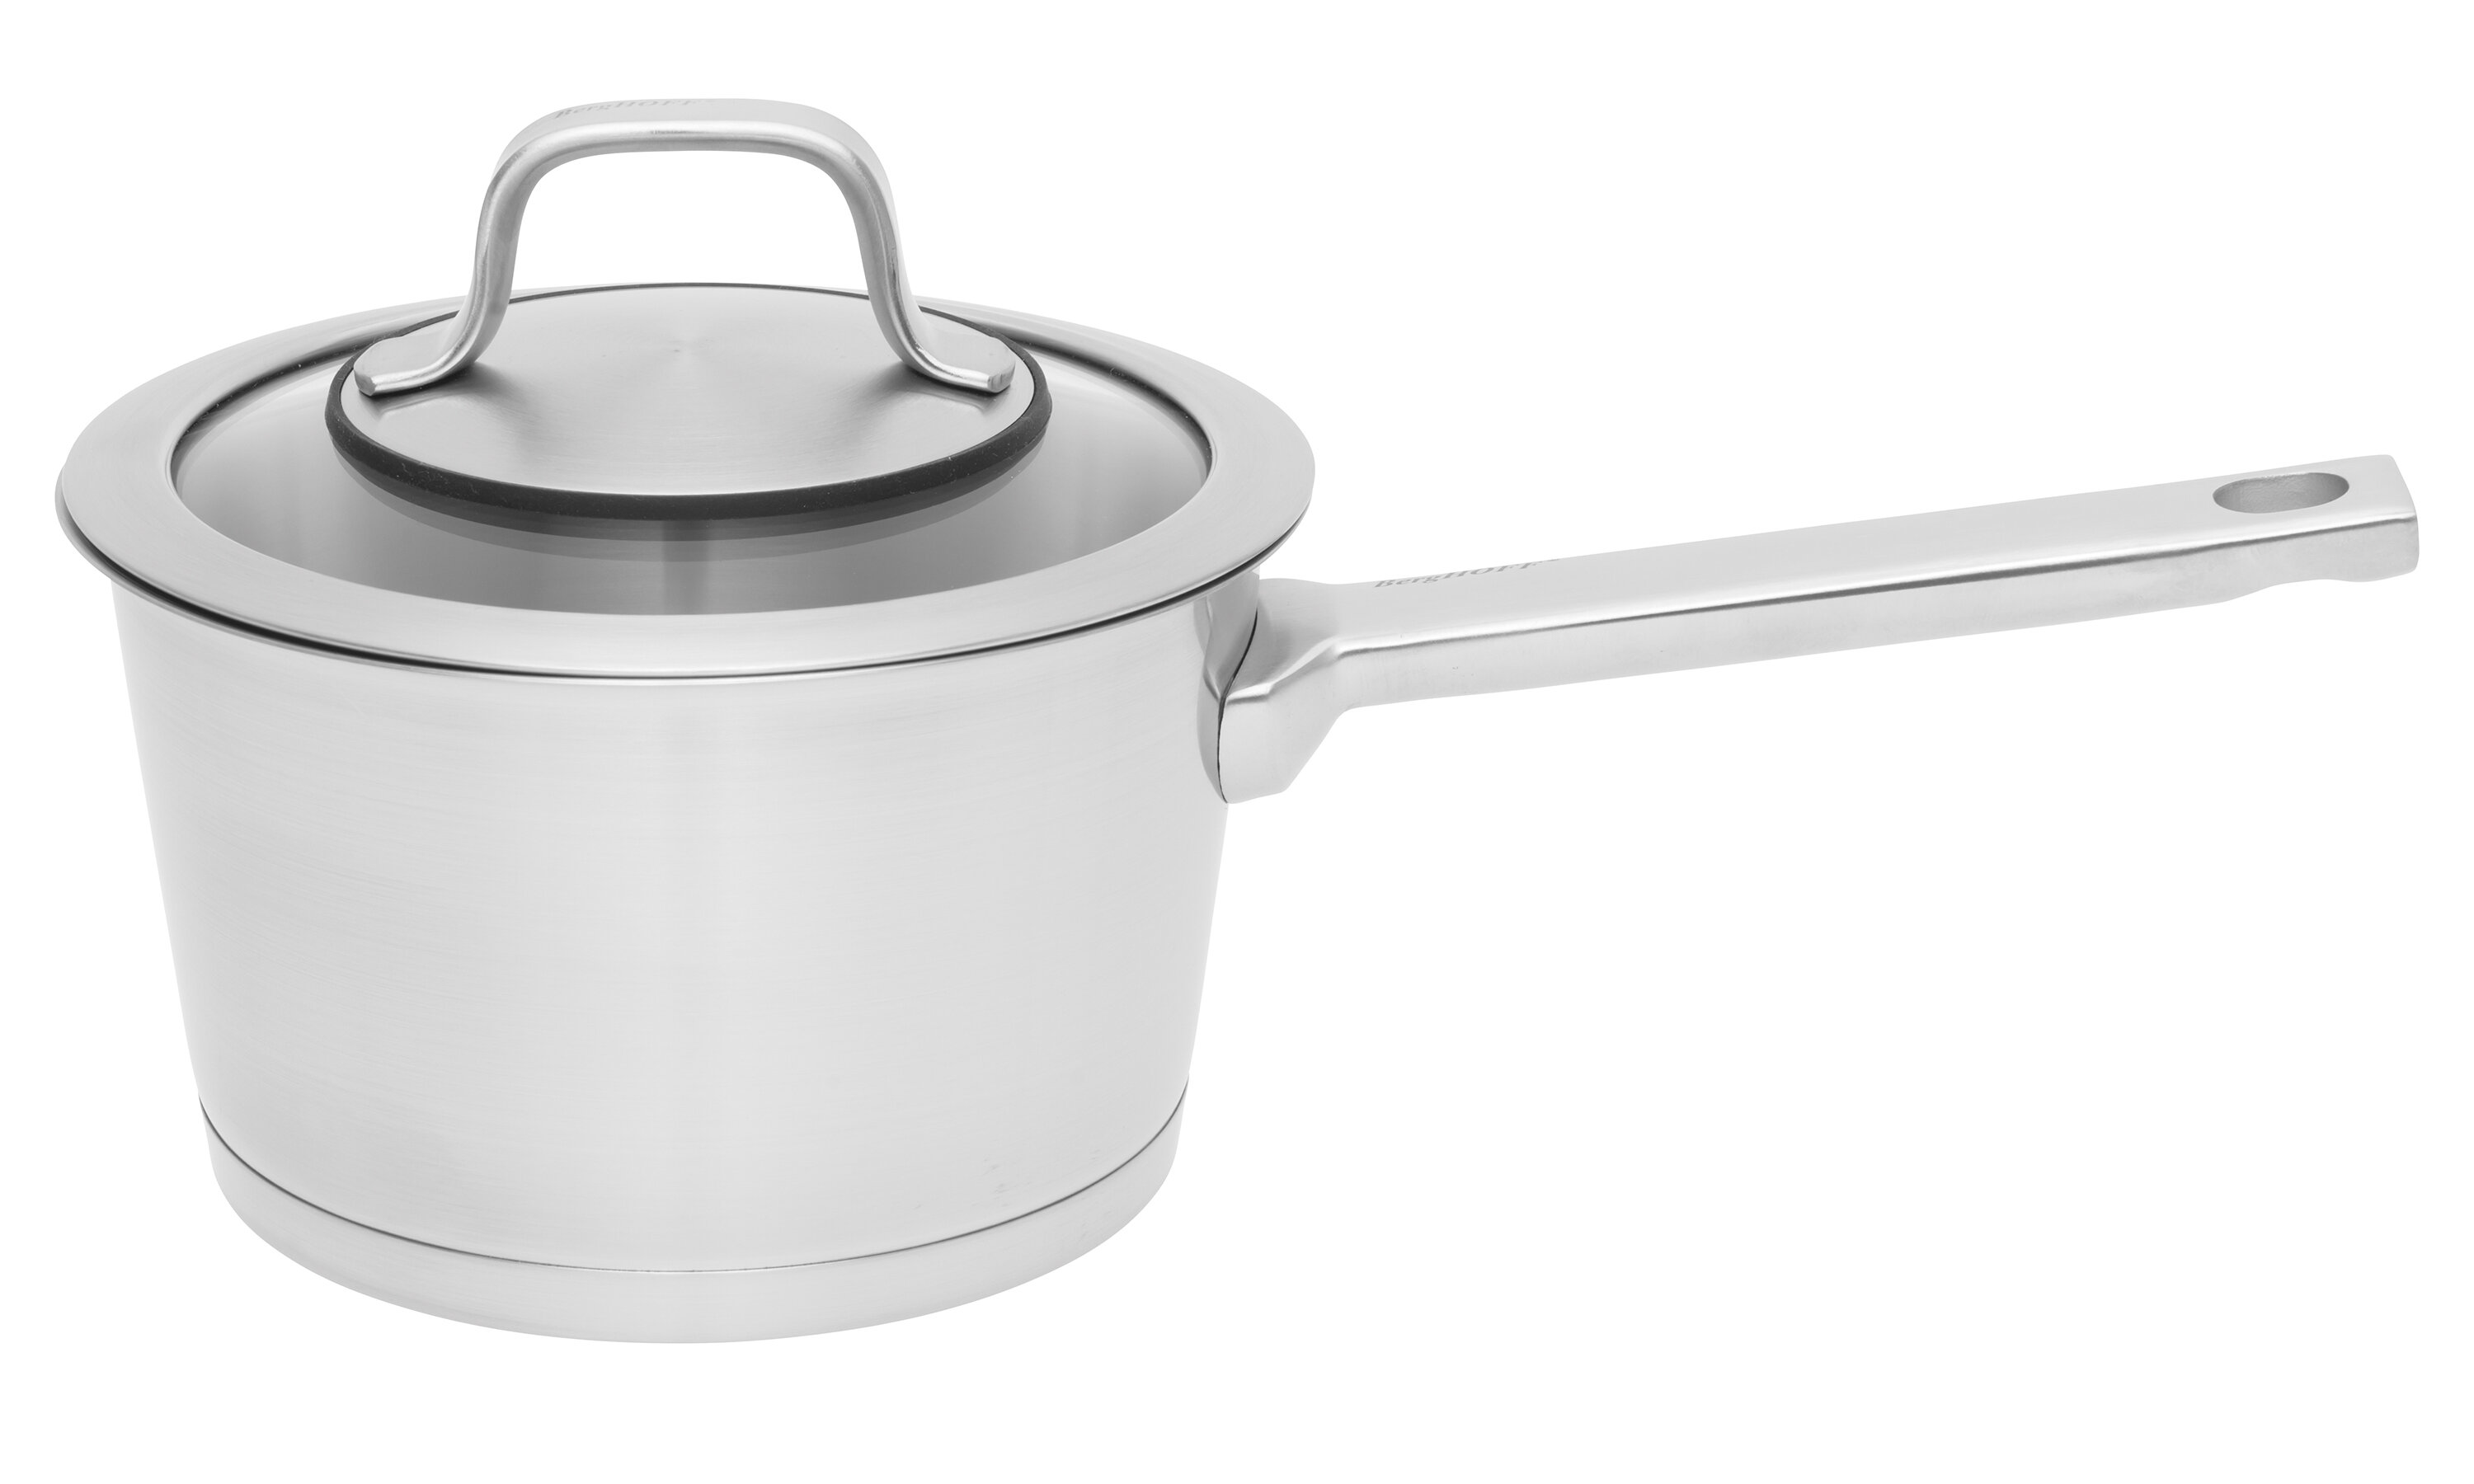 Casserole Induction Compatible Vitroceramique berghoff international manhattan covered 1.8 qt. stainless steel sauce pan  with lid